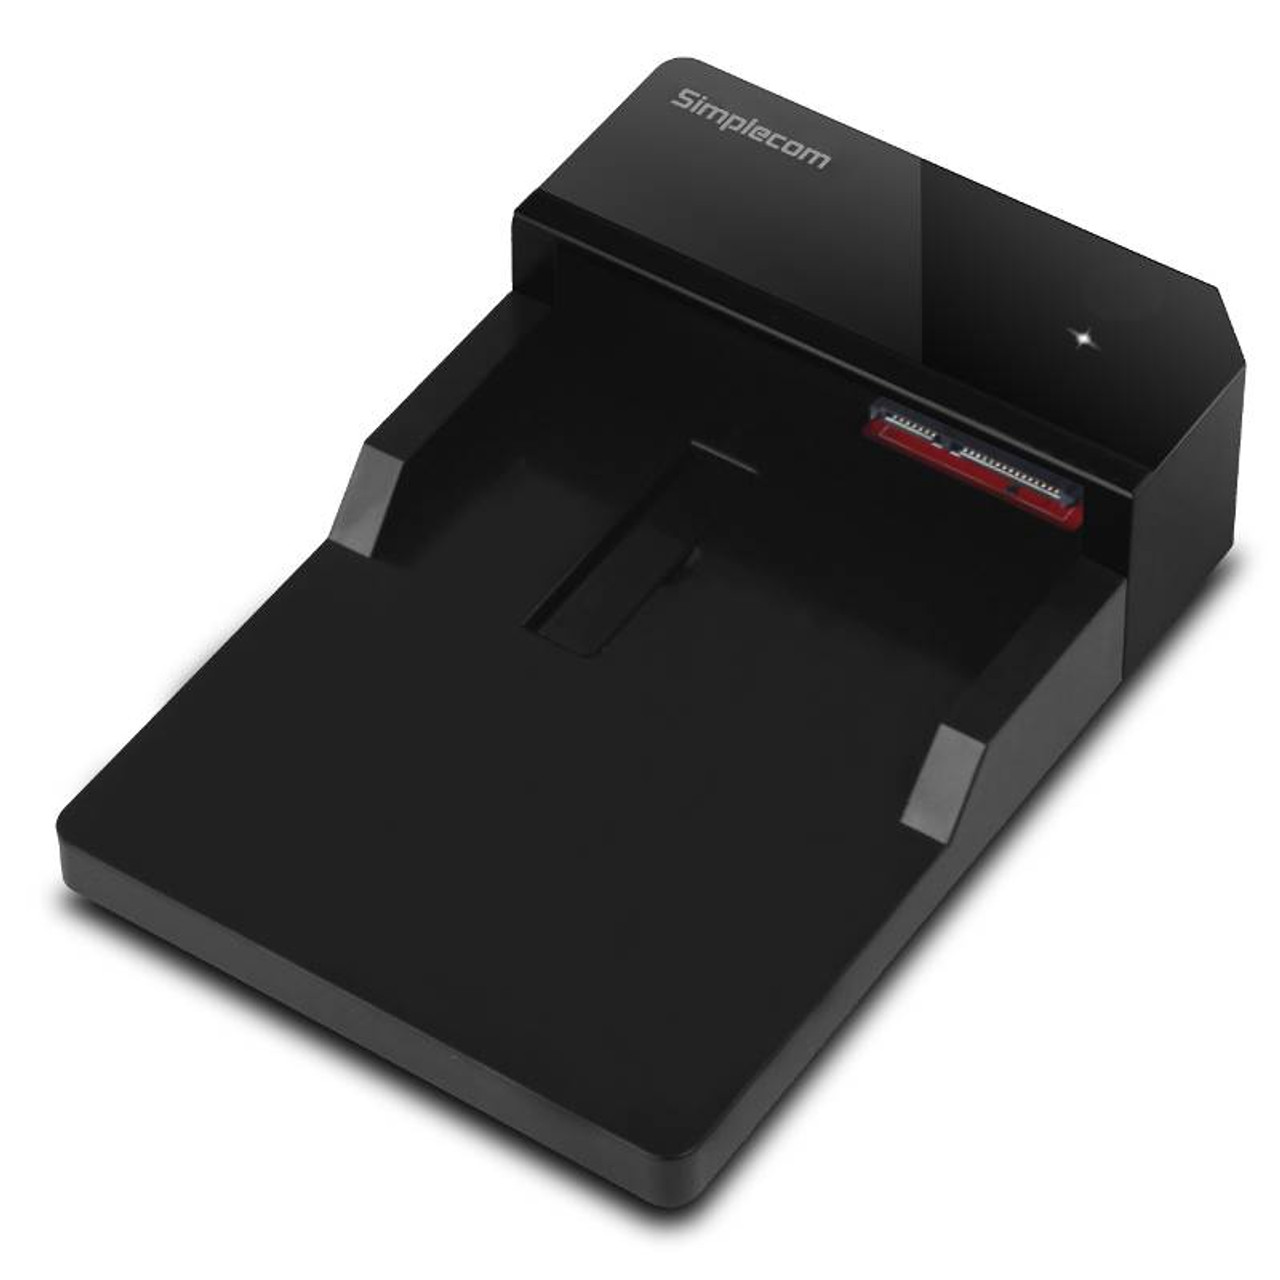 Image for Simplecom SD323-BK USB 3.0 SATA 2.5in/3.5in Hard Drive Docking Station - Black CX Computer Superstore